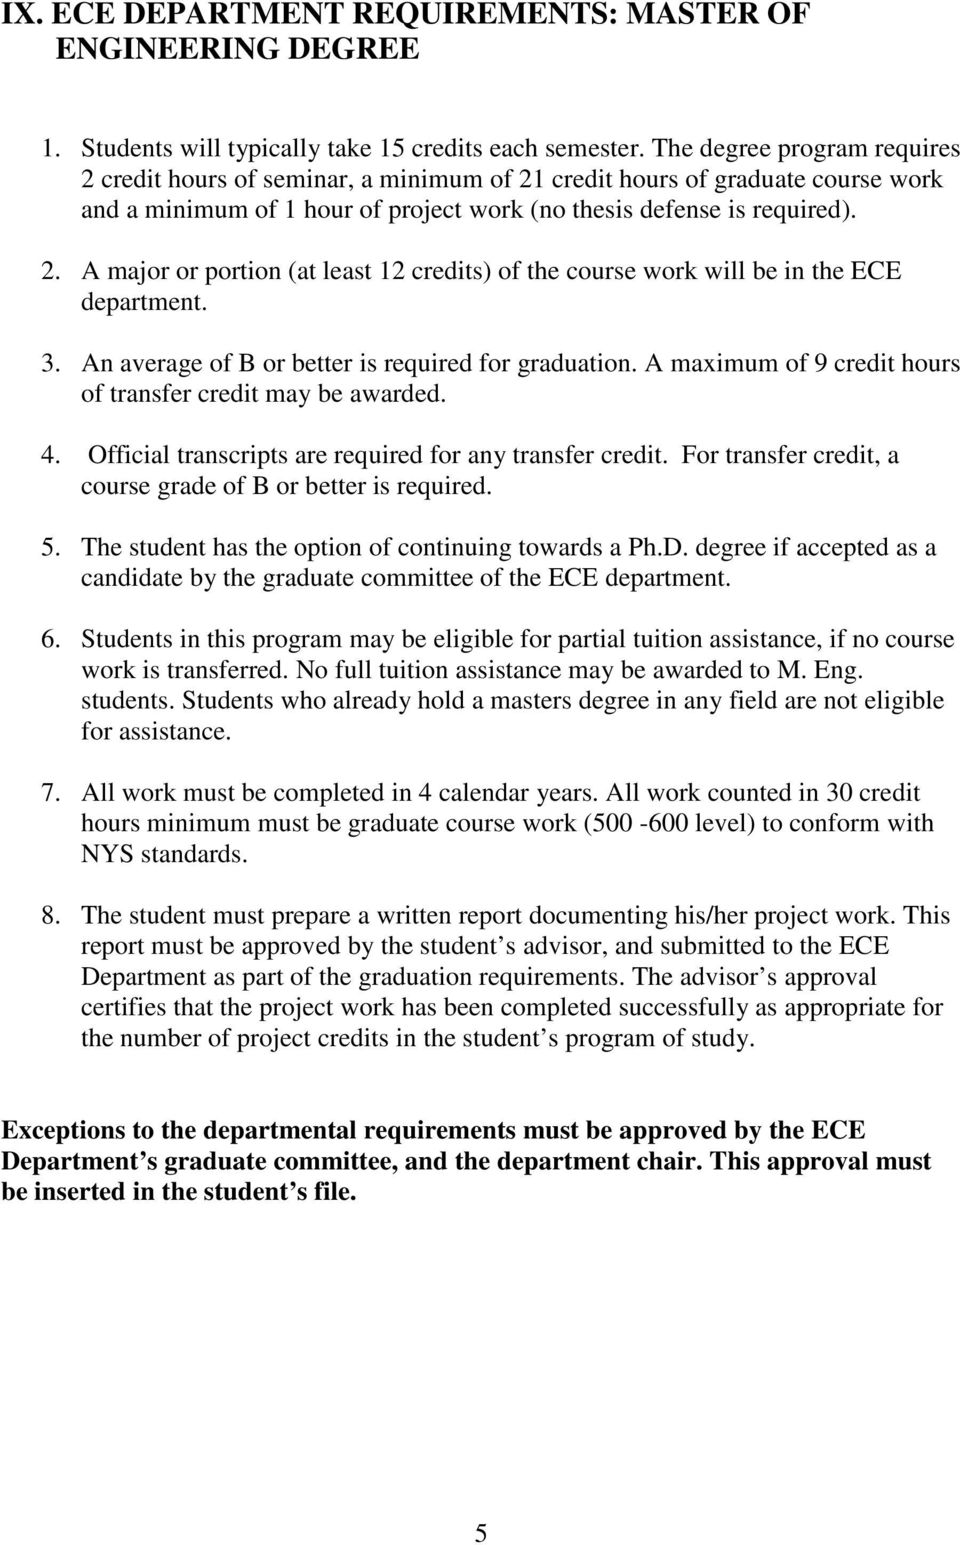 3. An average of B or better is required for graduation. A maximum of 9 credit hours of transfer credit may be awarded. 4. Official transcripts are required for any transfer credit.